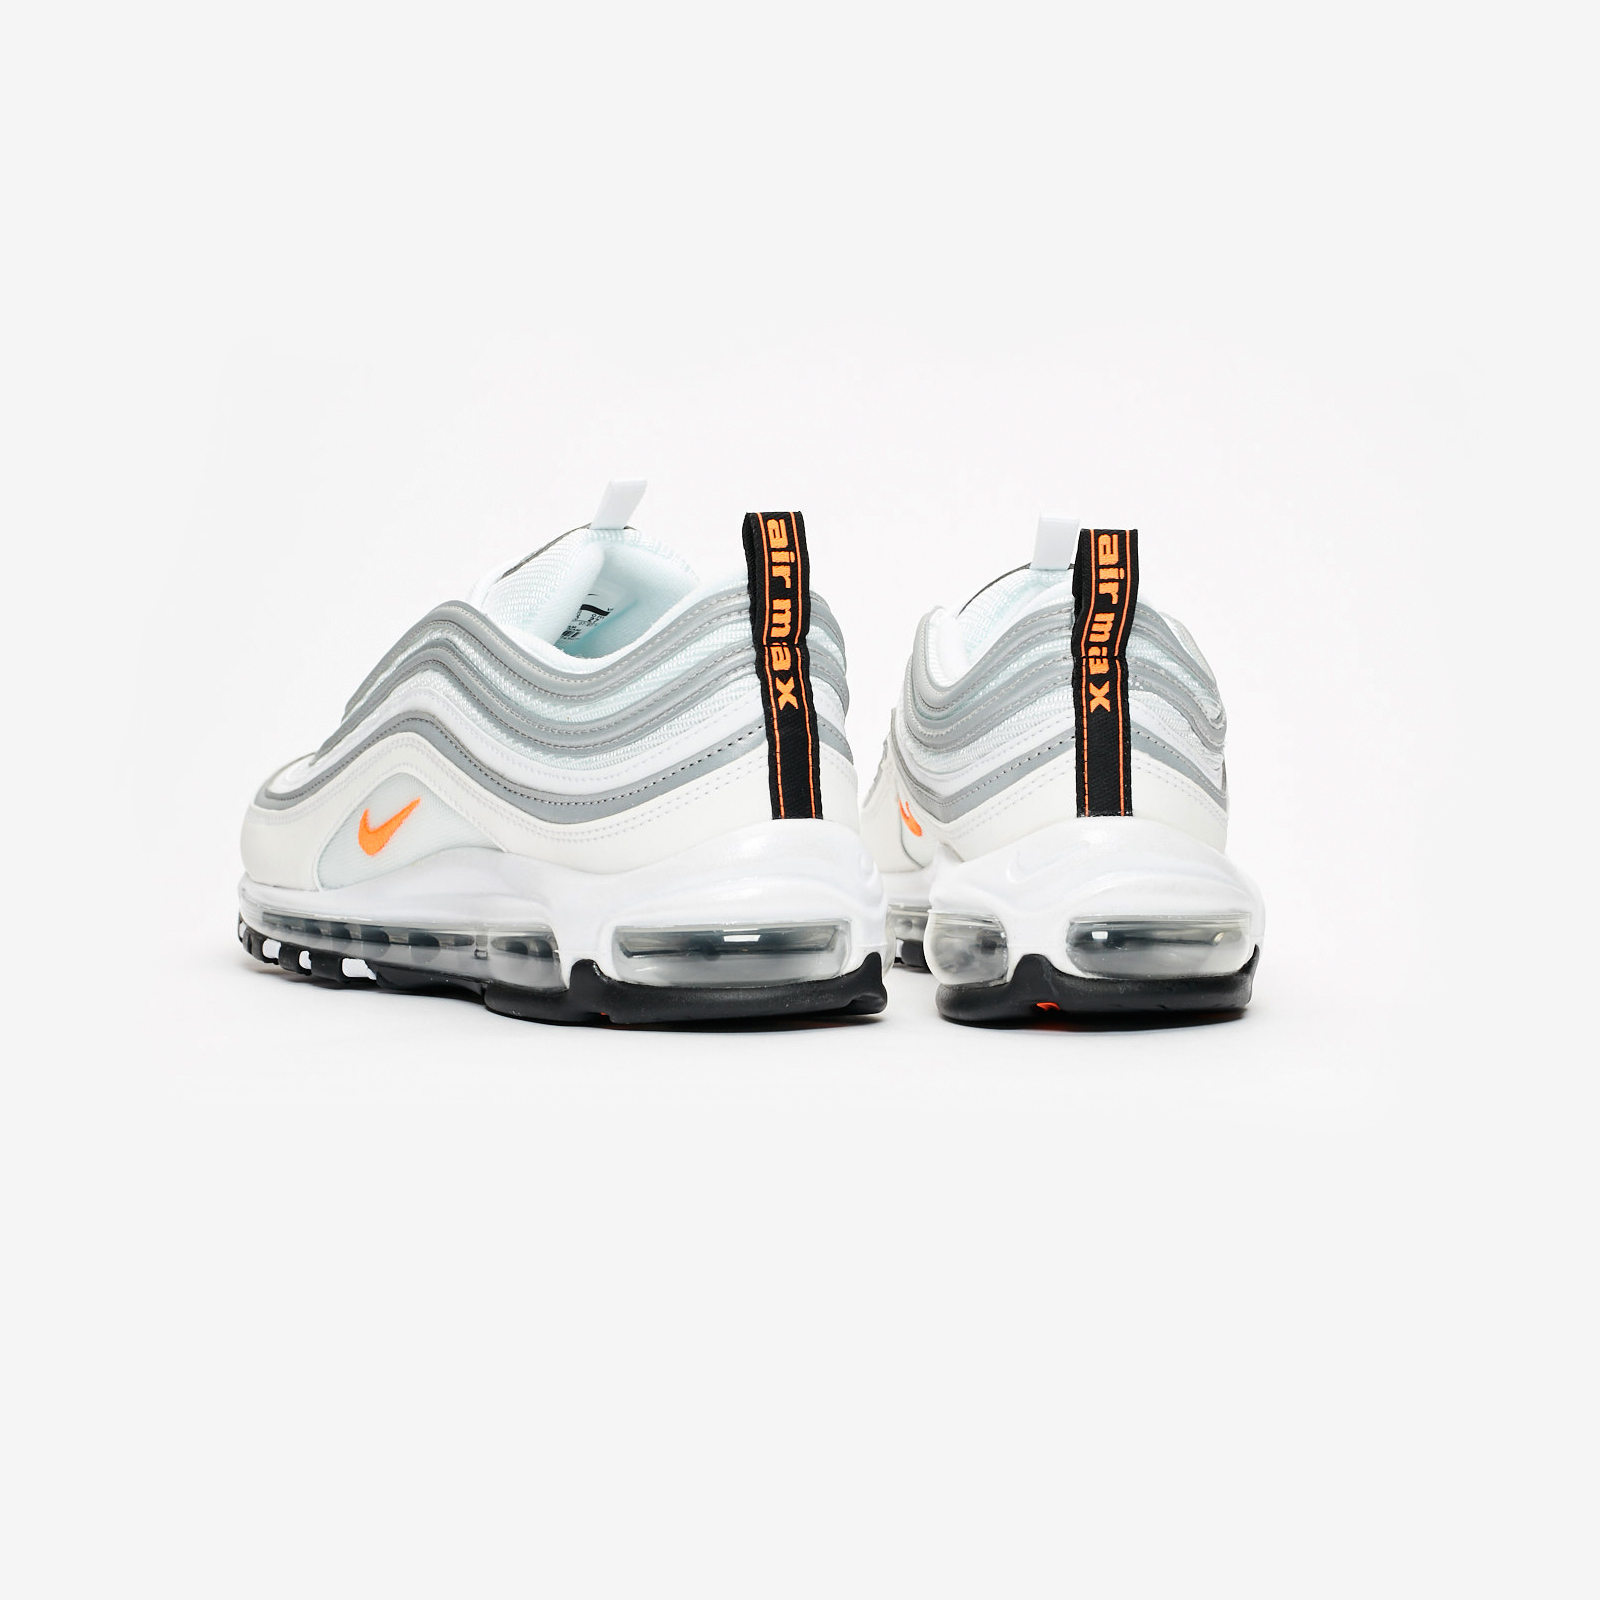 d3378a40ae Nike Sportswear Air Max 97. Article no. Bq4567-100. White/Cone/Metallic  Silver. Men